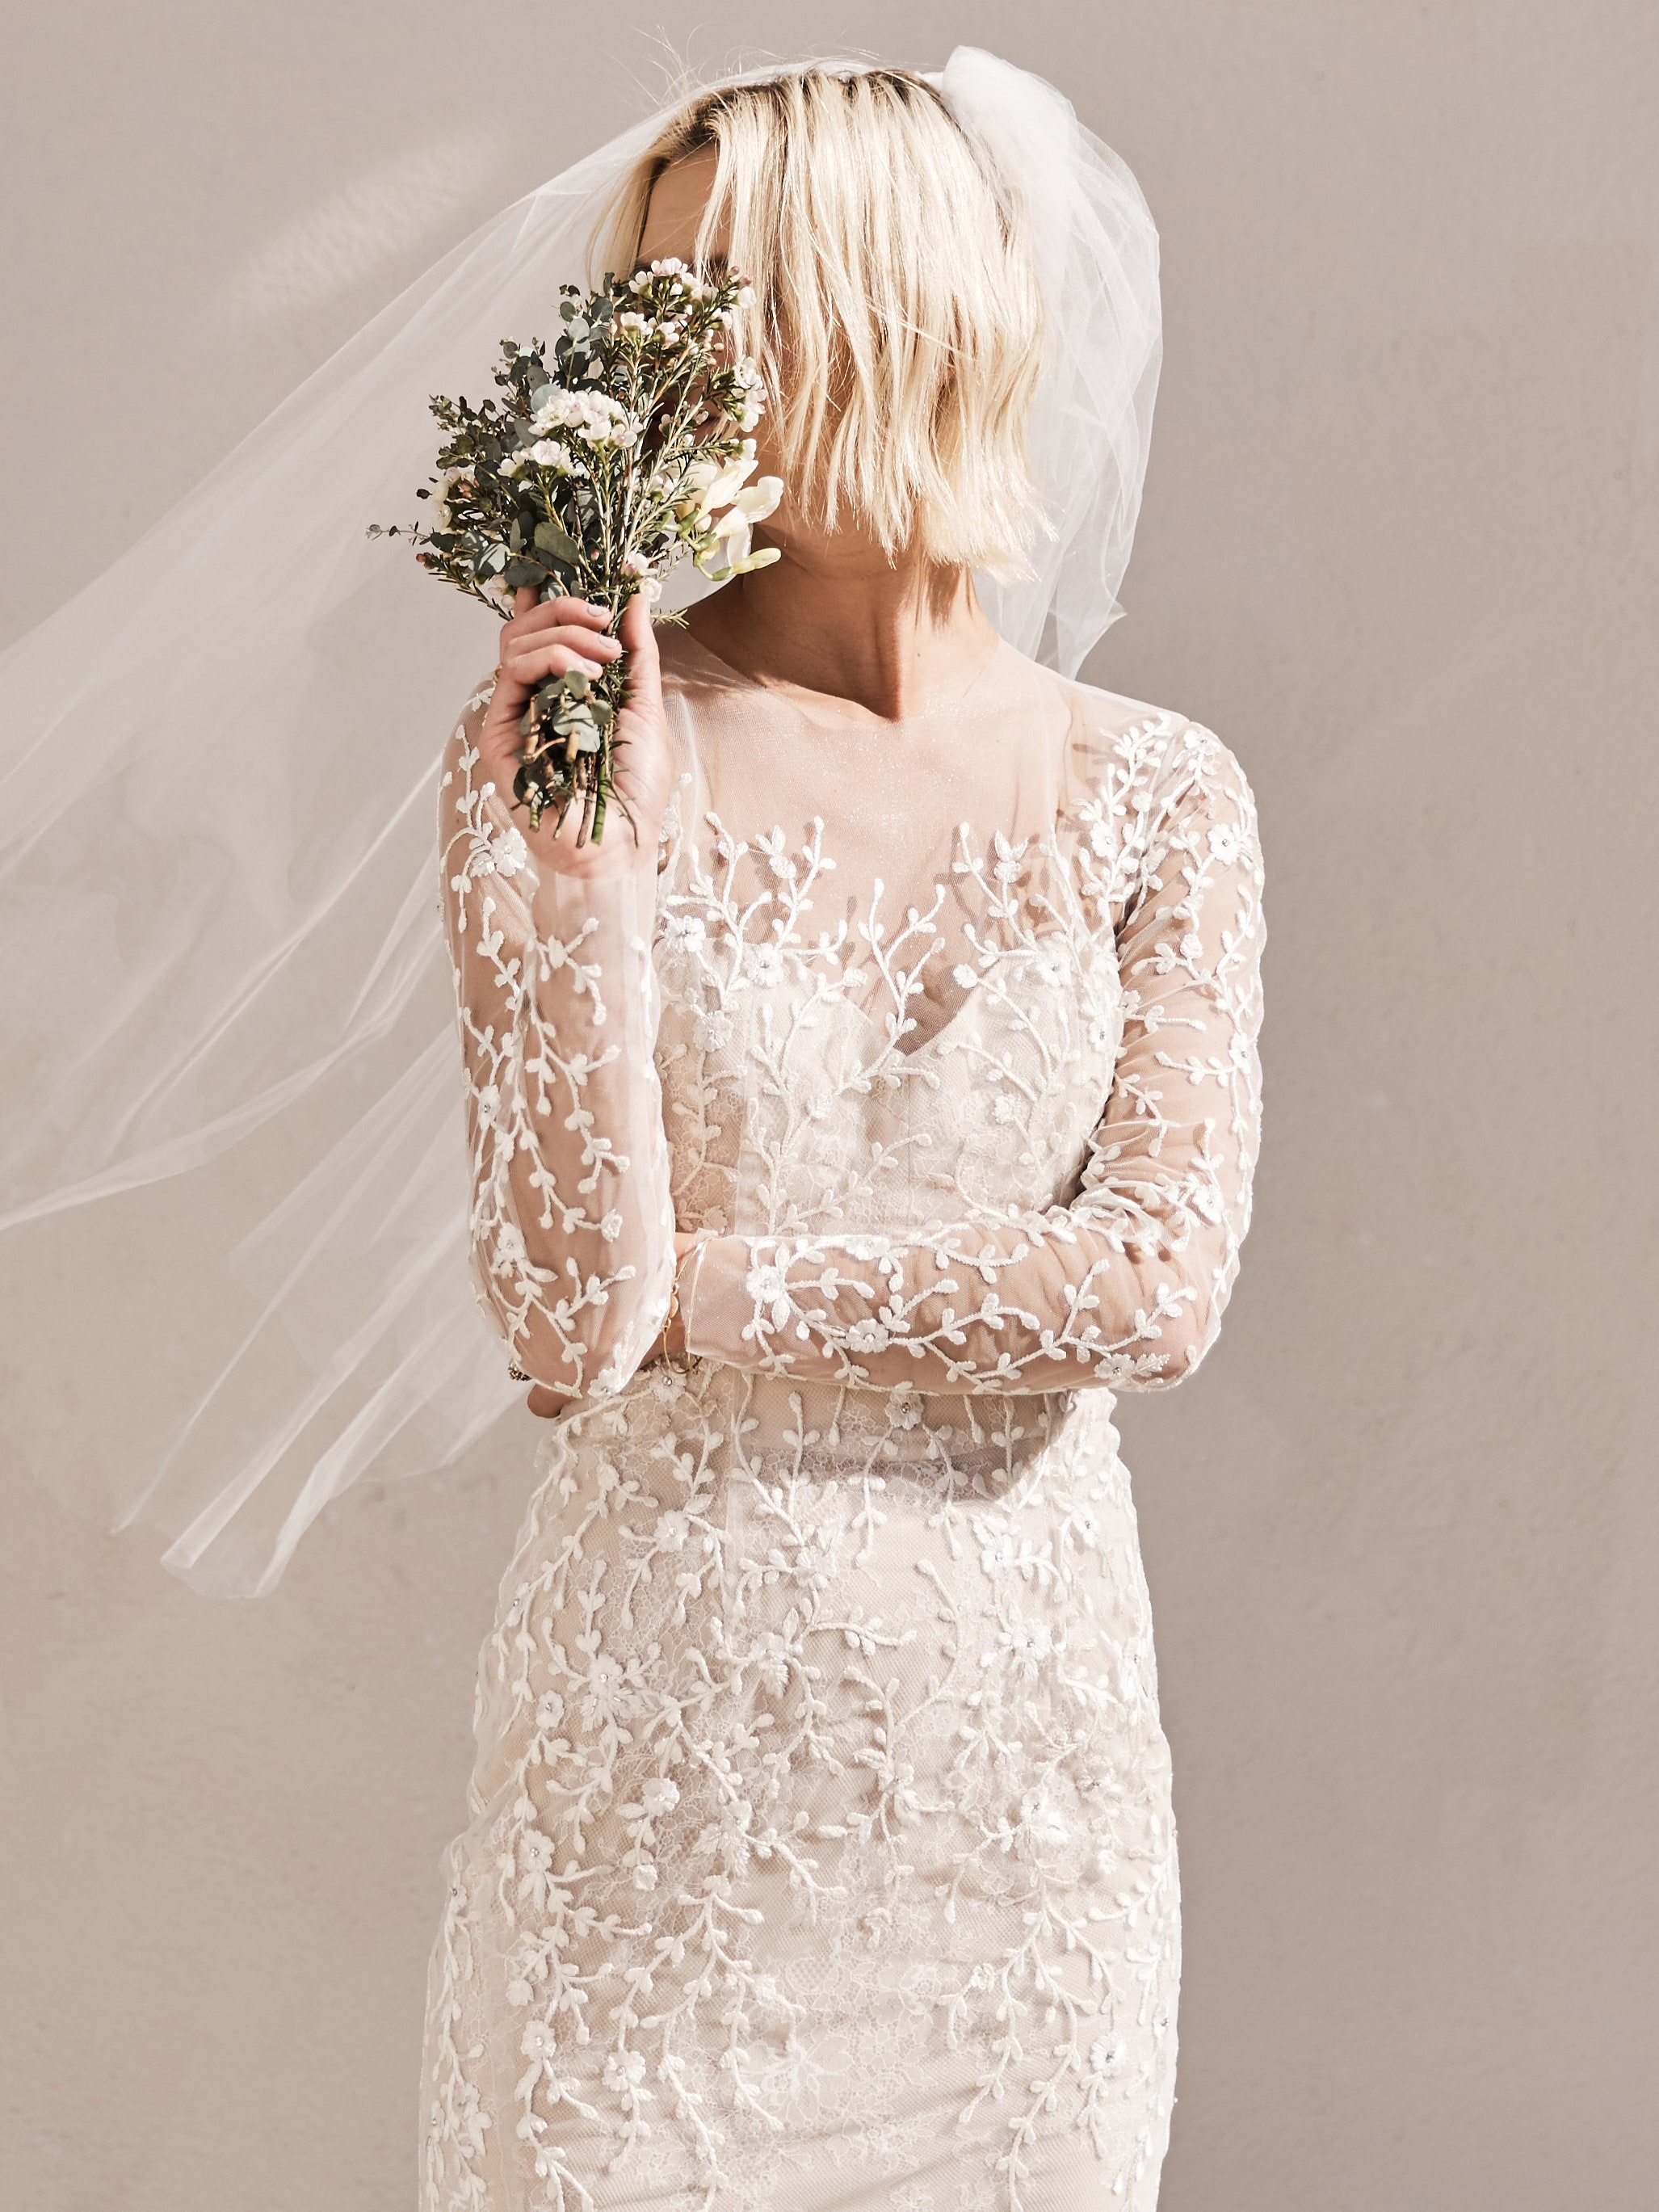 The 22 Best Places to Shop for Affordable Wedding Dresses in 2020 | Allure